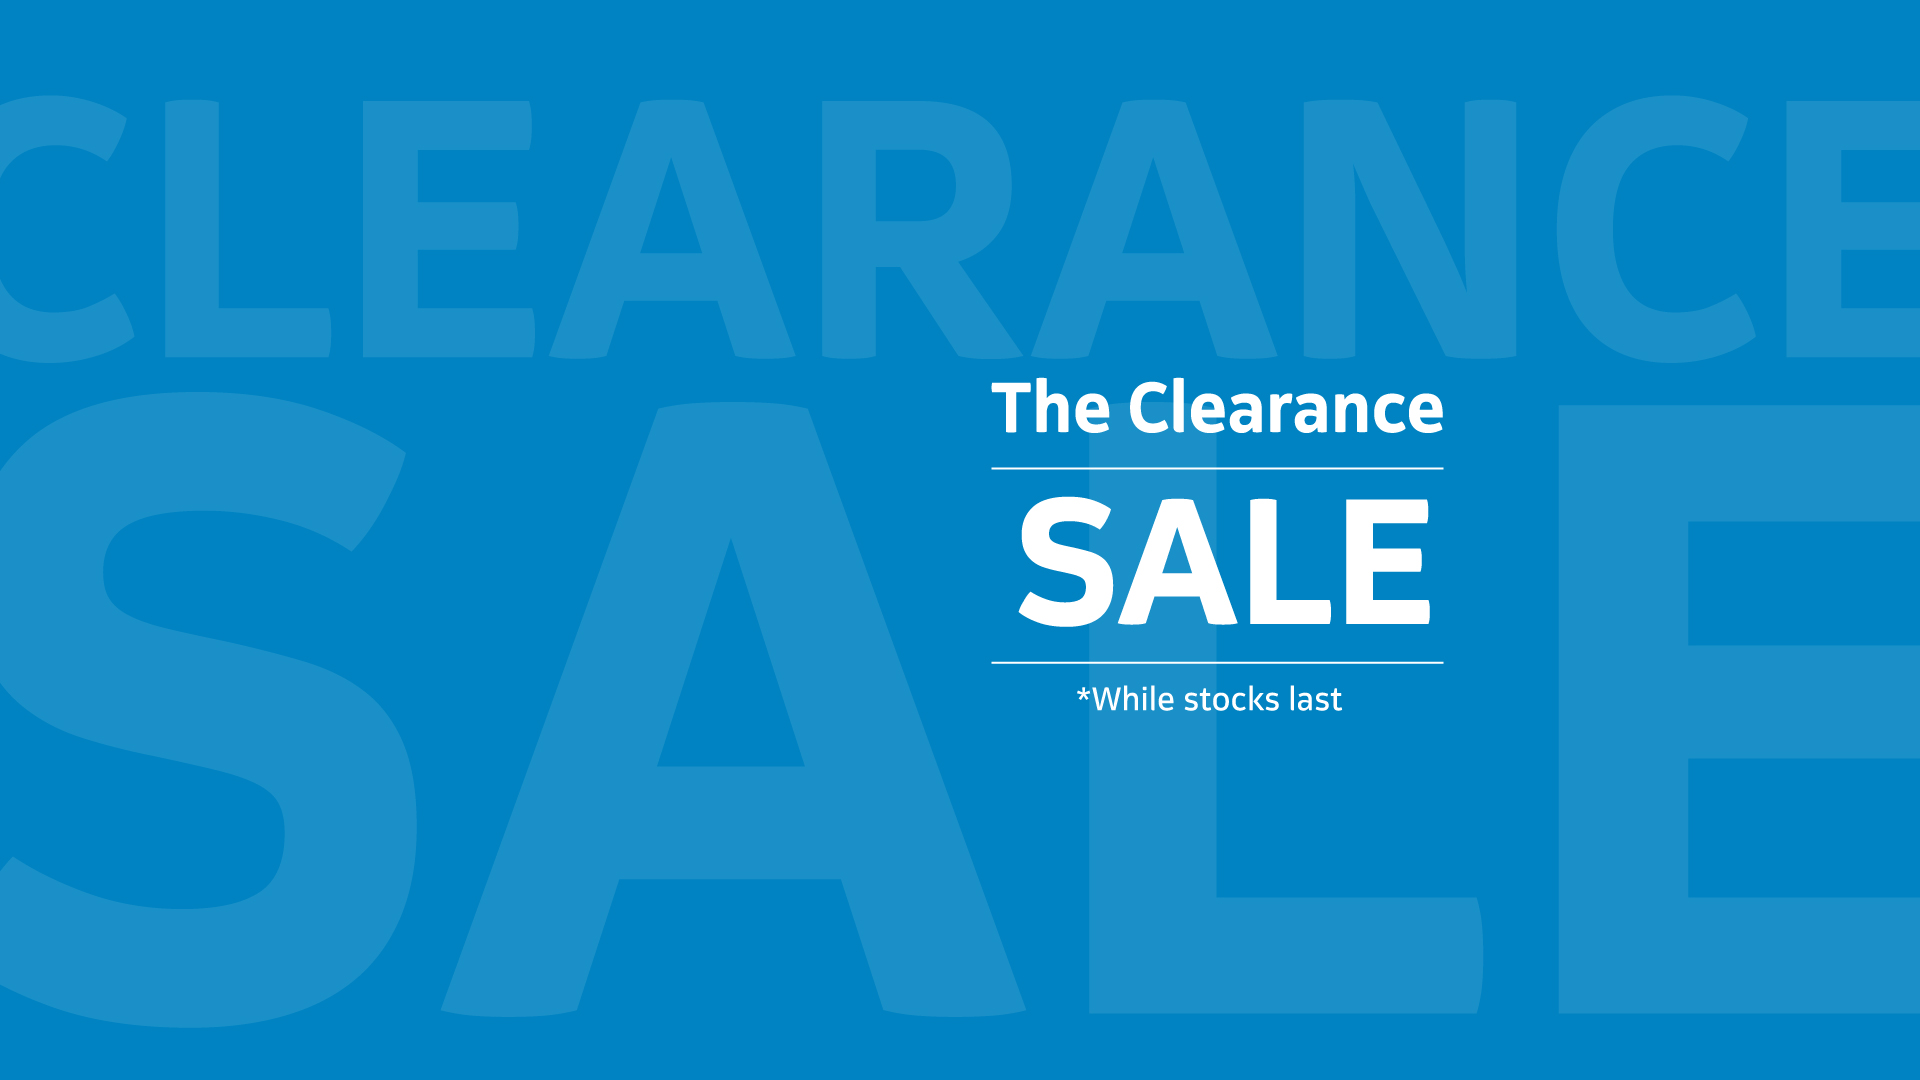 "<strong style=""font-size:26px !important;""><font color=""#ffffff"">Its the Telkom Clearance Sale</font></strong>"